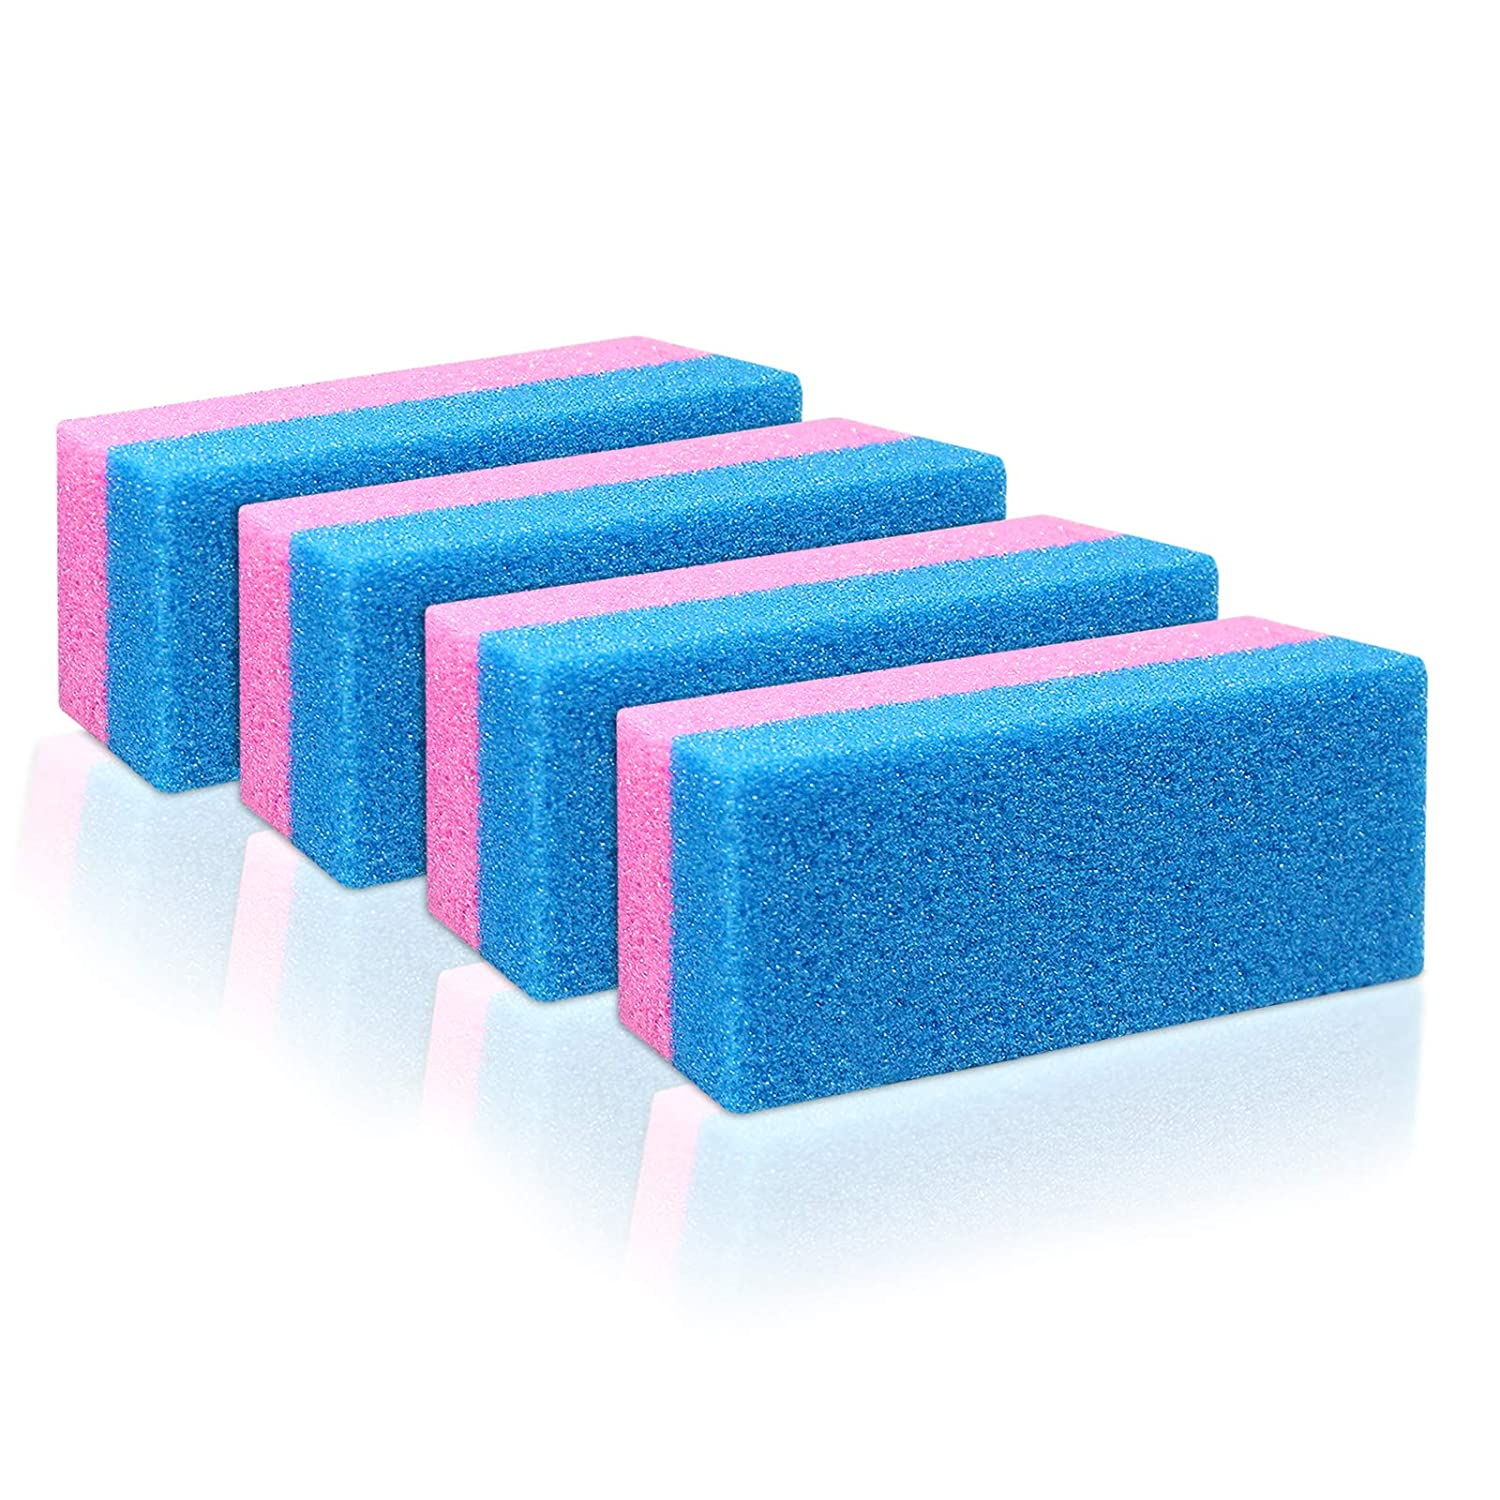 Pumice Bar 4 Pcs Set | Dual Sided Extra Coarse | Exfoliating Foot File | Heel & Feet Scrubber Pumice Sponge | Foot Pad Buffer Callus Remover | Synthetic Pumice Stone for Dry Skin Pedicure |By Anapoliz